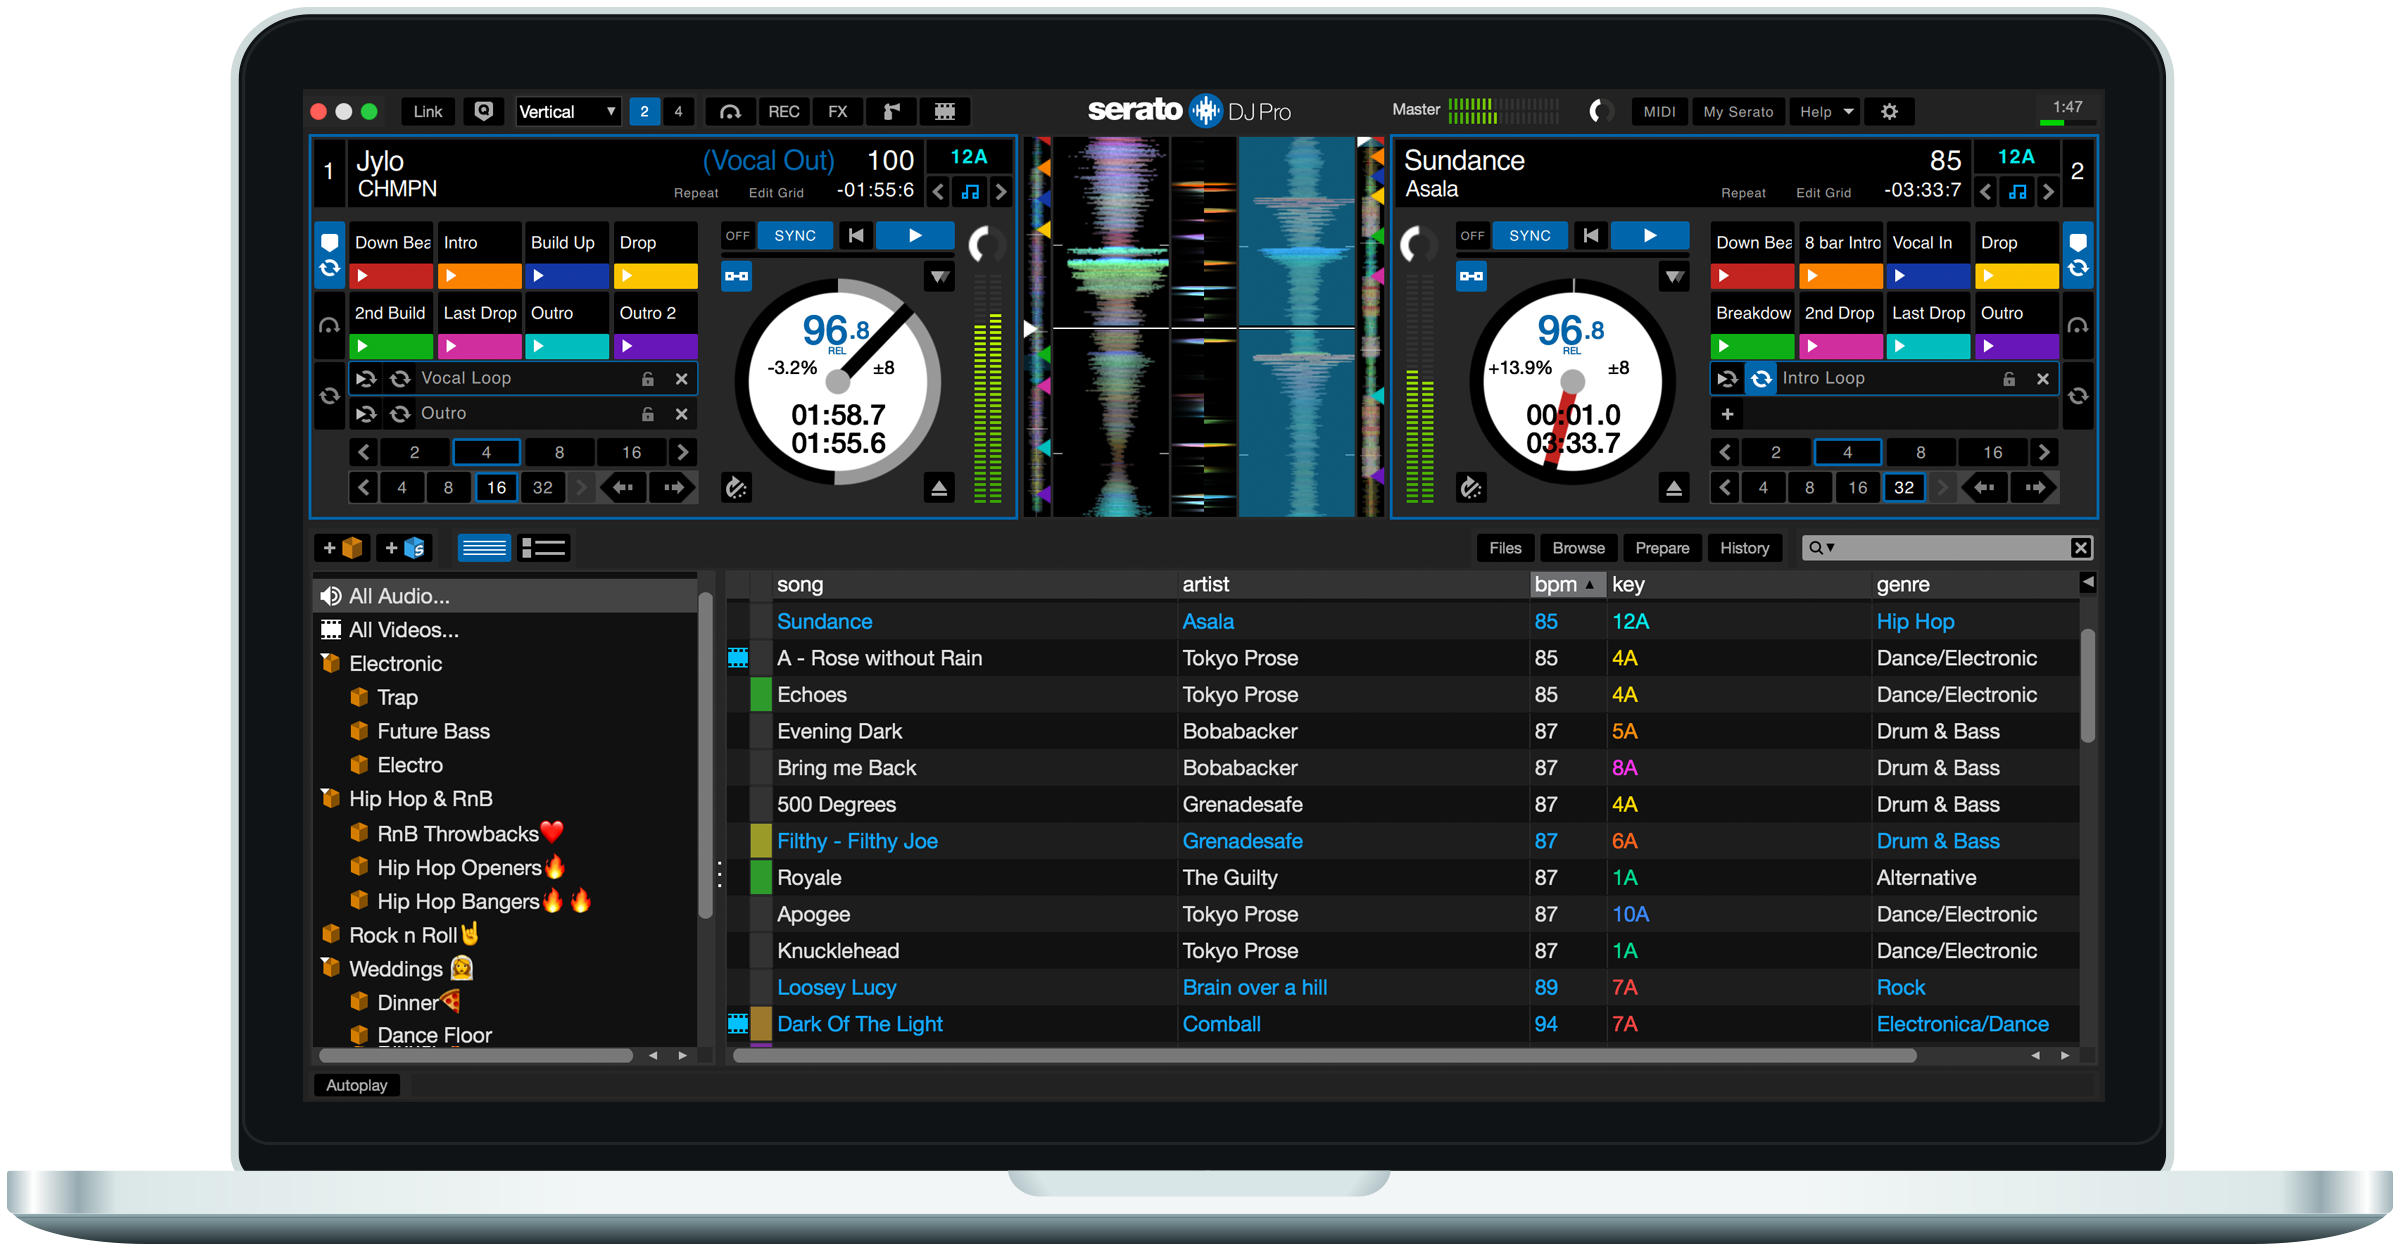 Serato DJ Pro 2.0 user interface